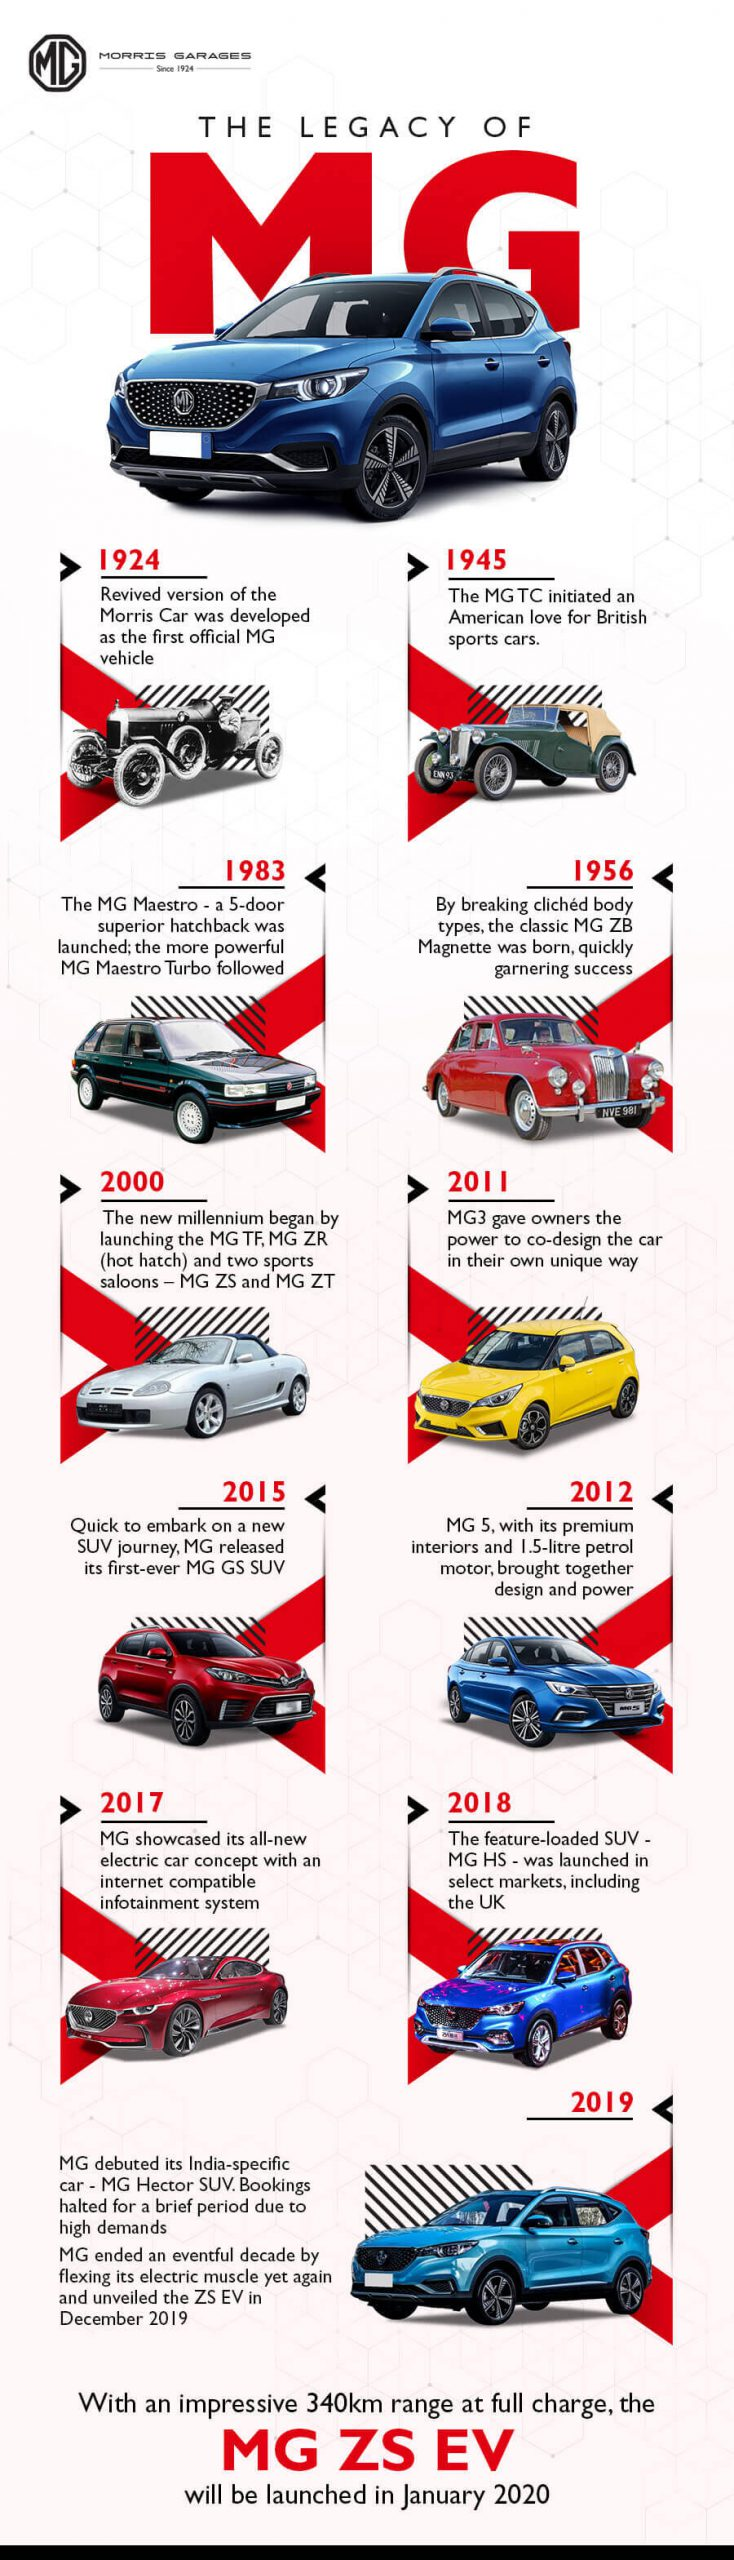 The legacy of MG Motor